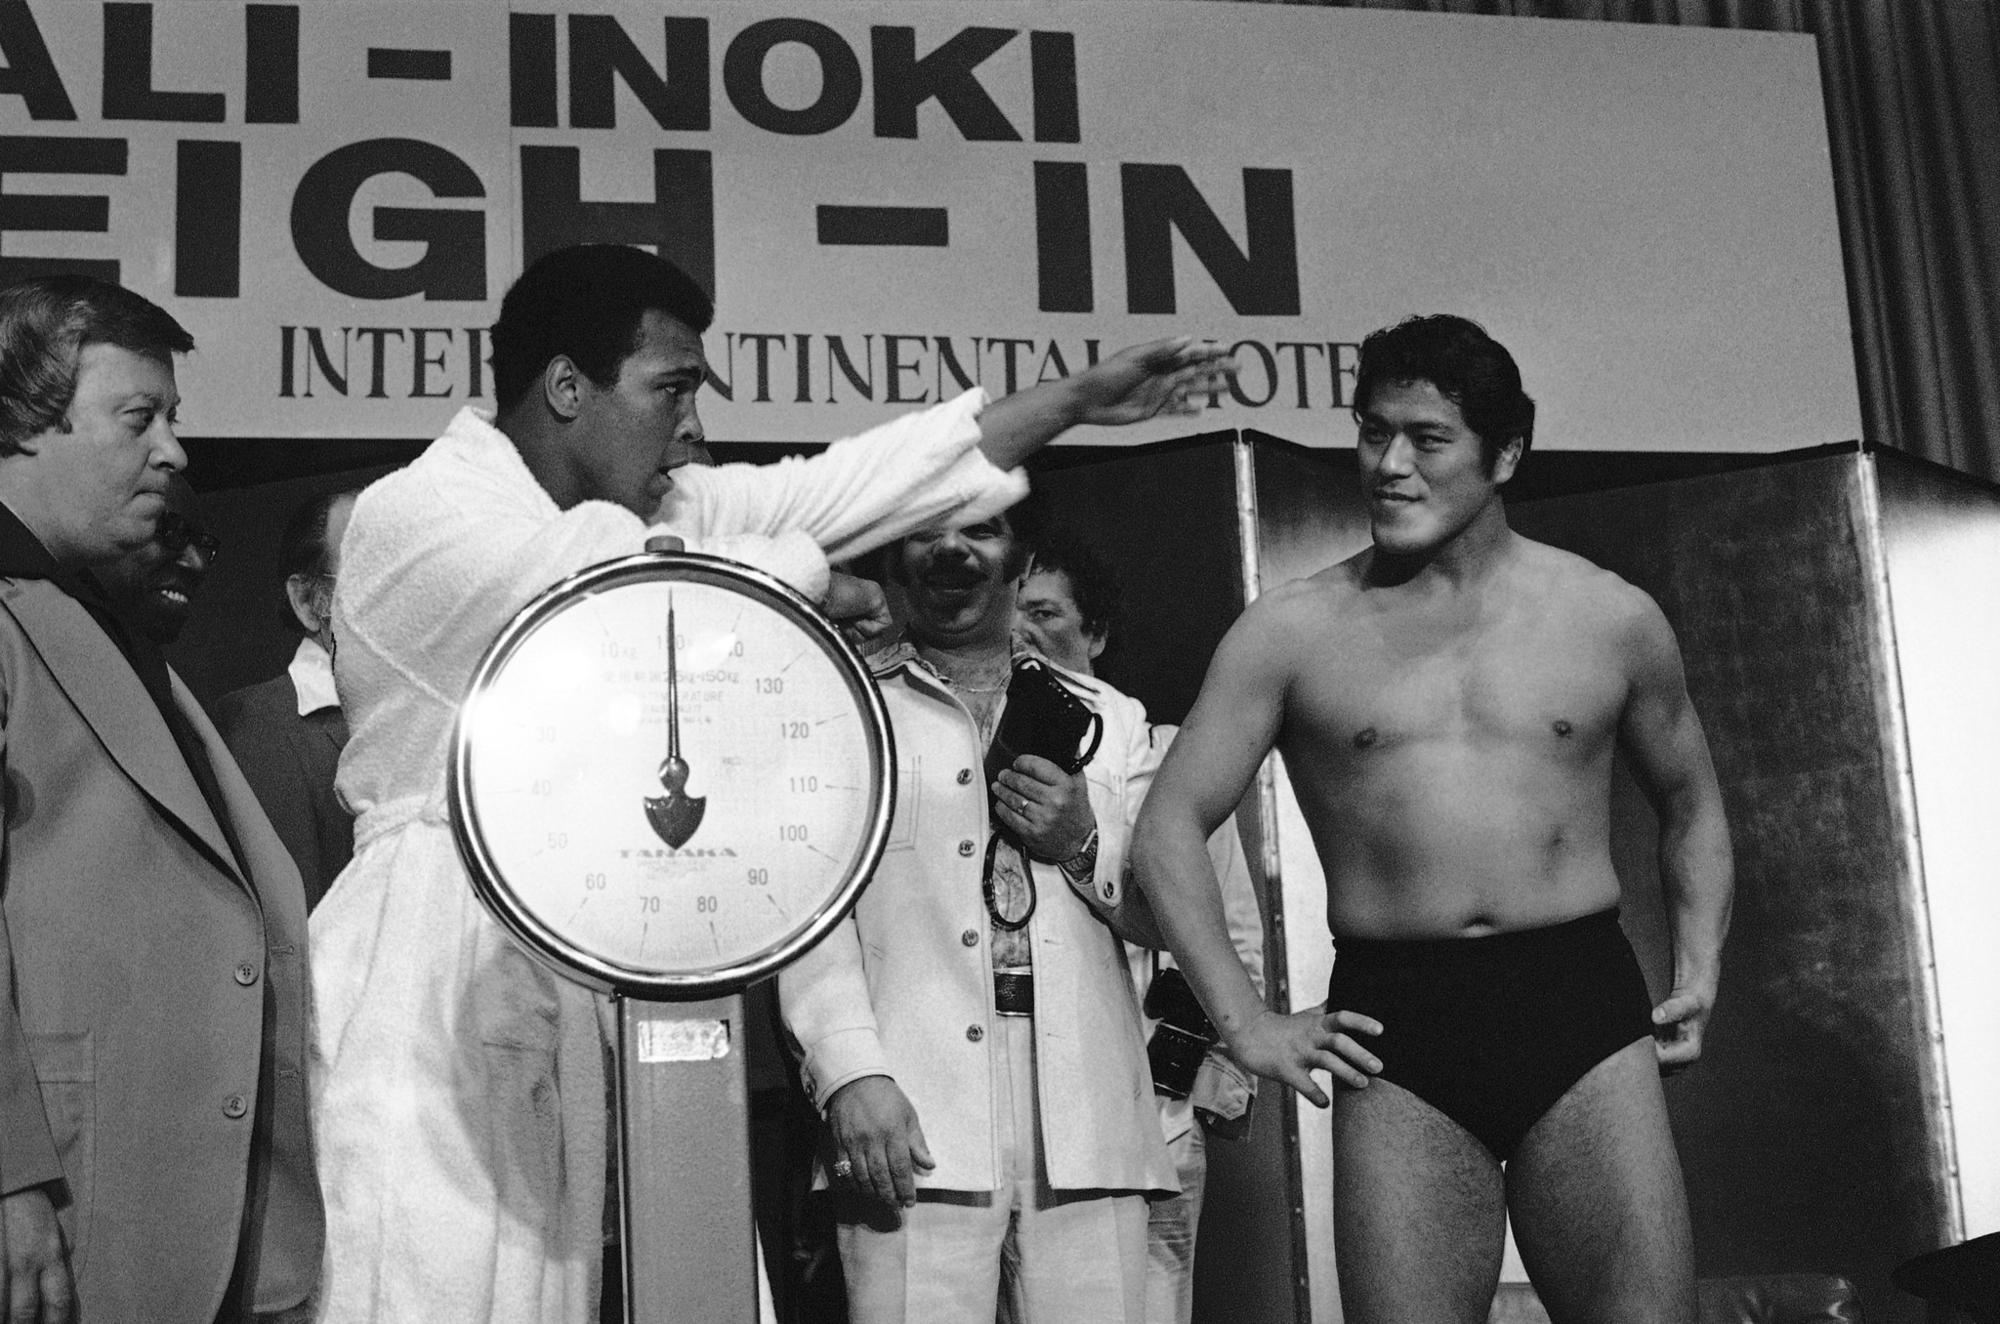 Muhammad-Ali-vs.-Antonio-Inoki-Weigh-In.jpg